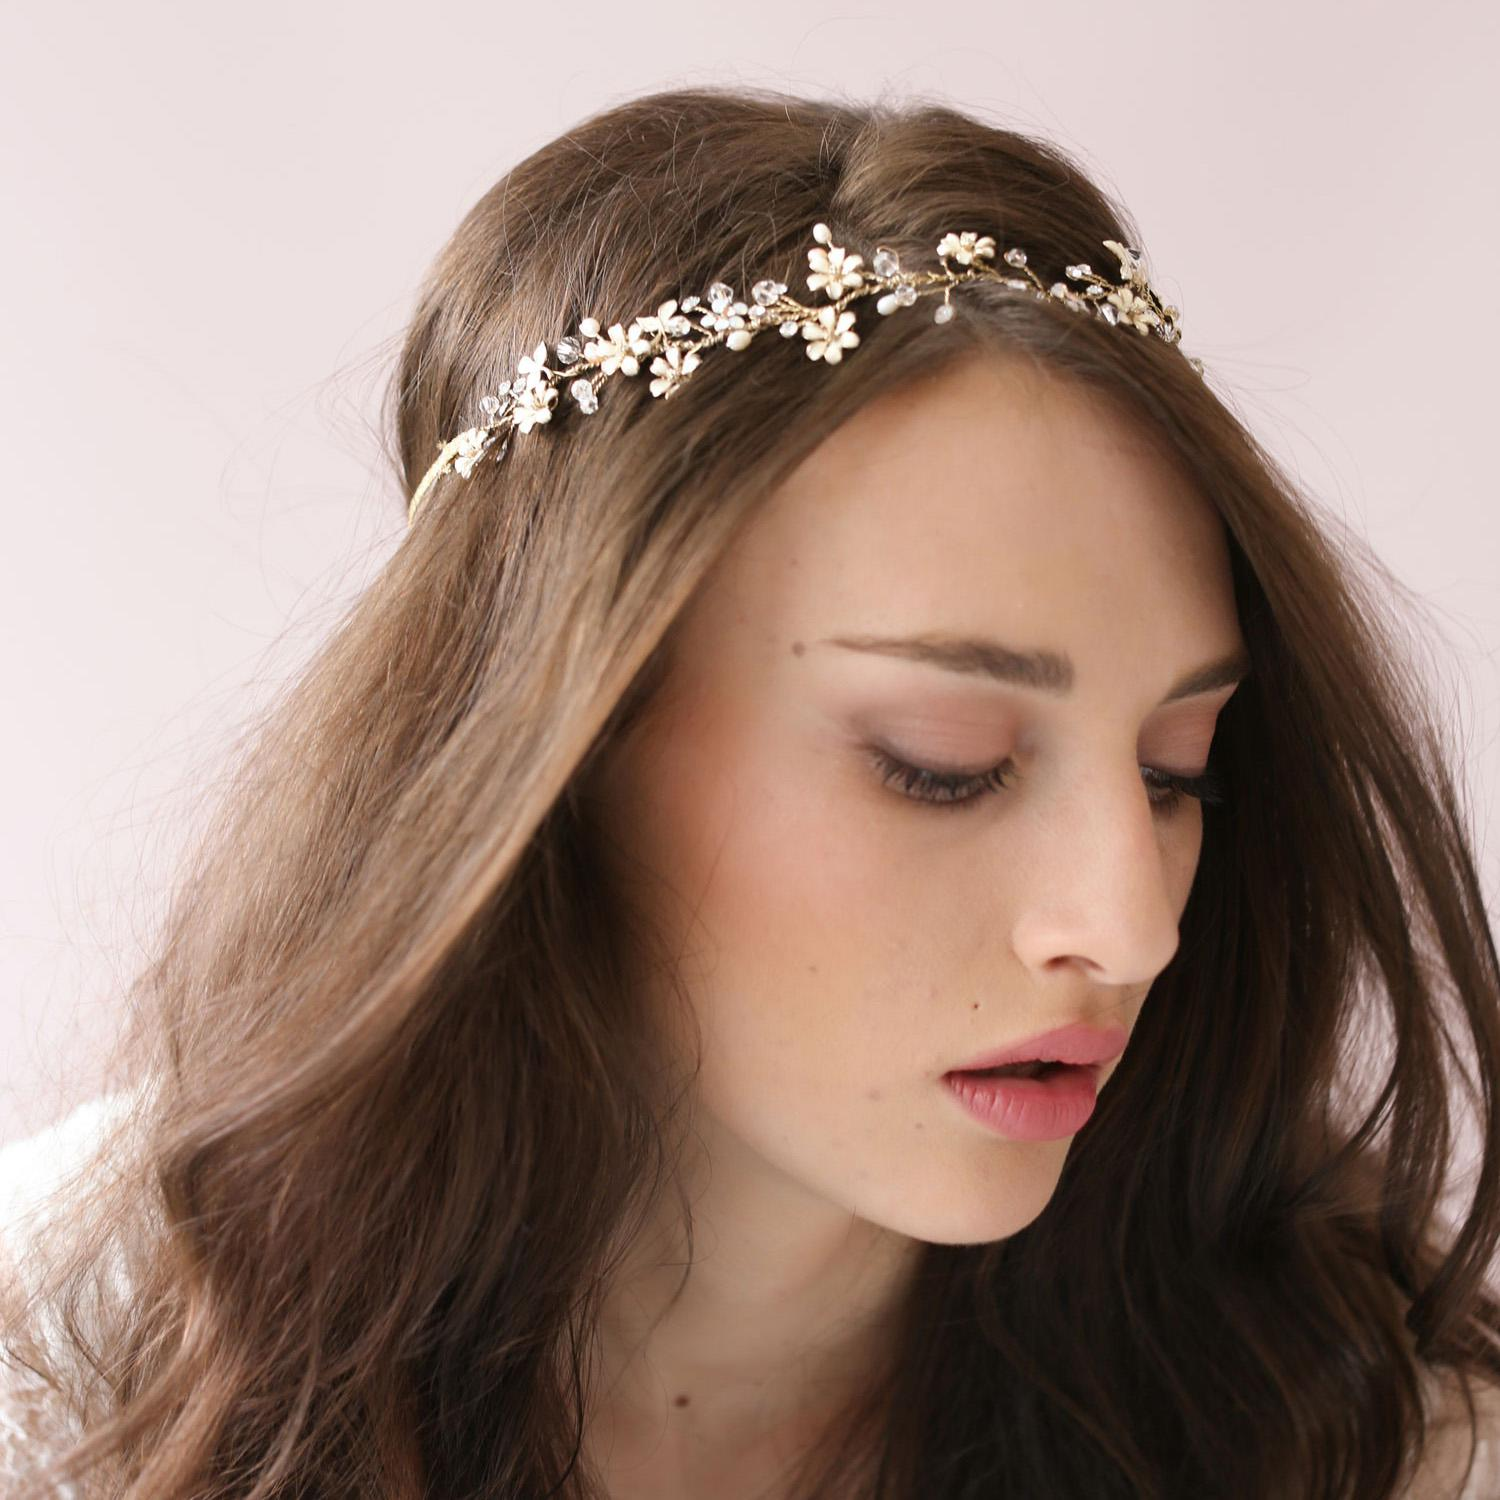 Tiny Enamel Blossom Crystal Hair Vine Bridal Hairband Acessories Wedding Headbands Accessories Headpieces For Weddings Pin